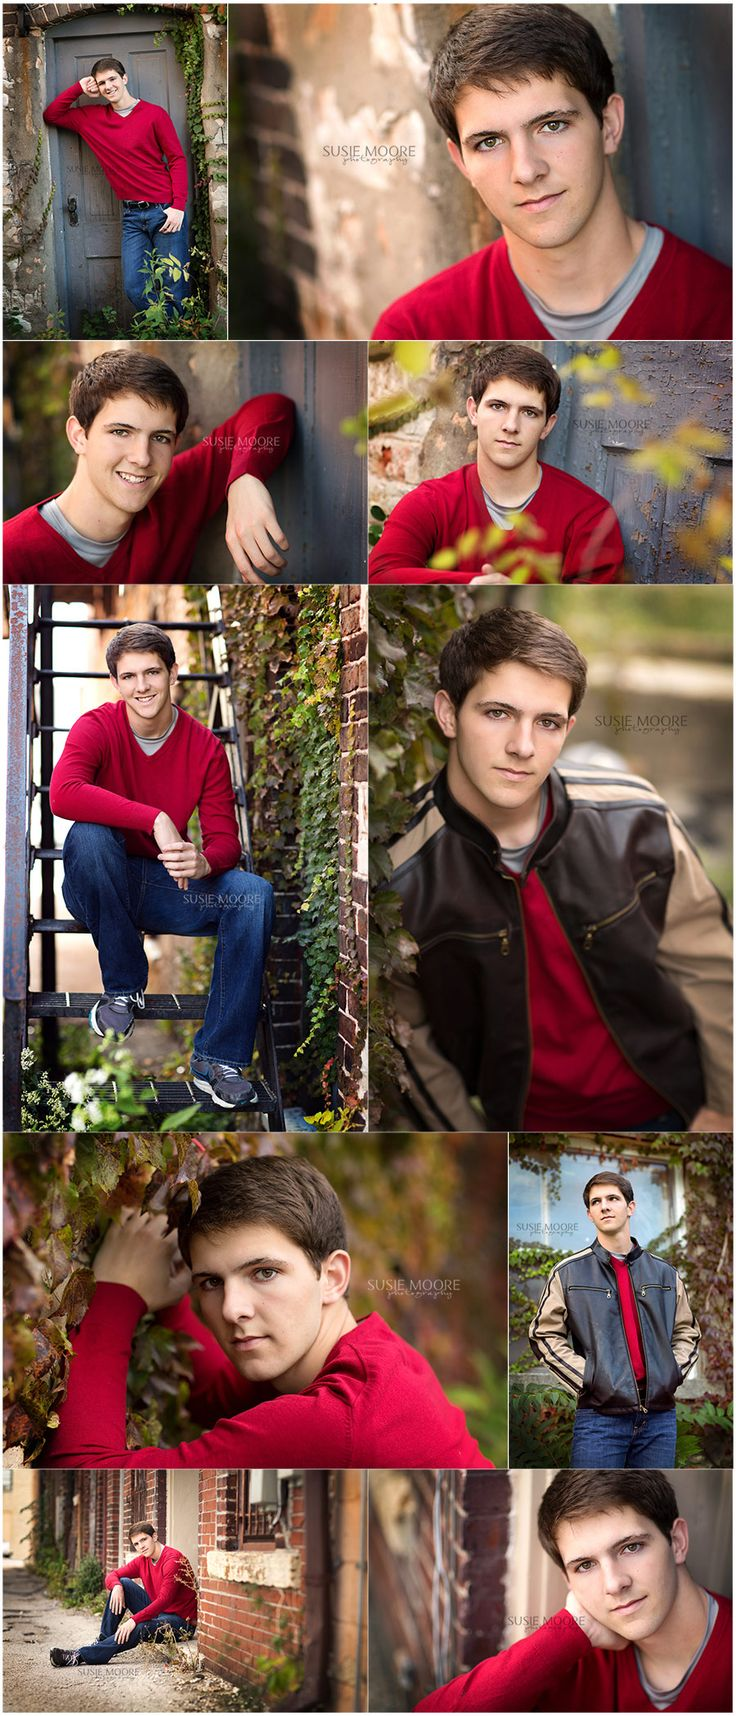 Grant | Chicago Senior Photographer | Susie Moore Photography | Senior Guy